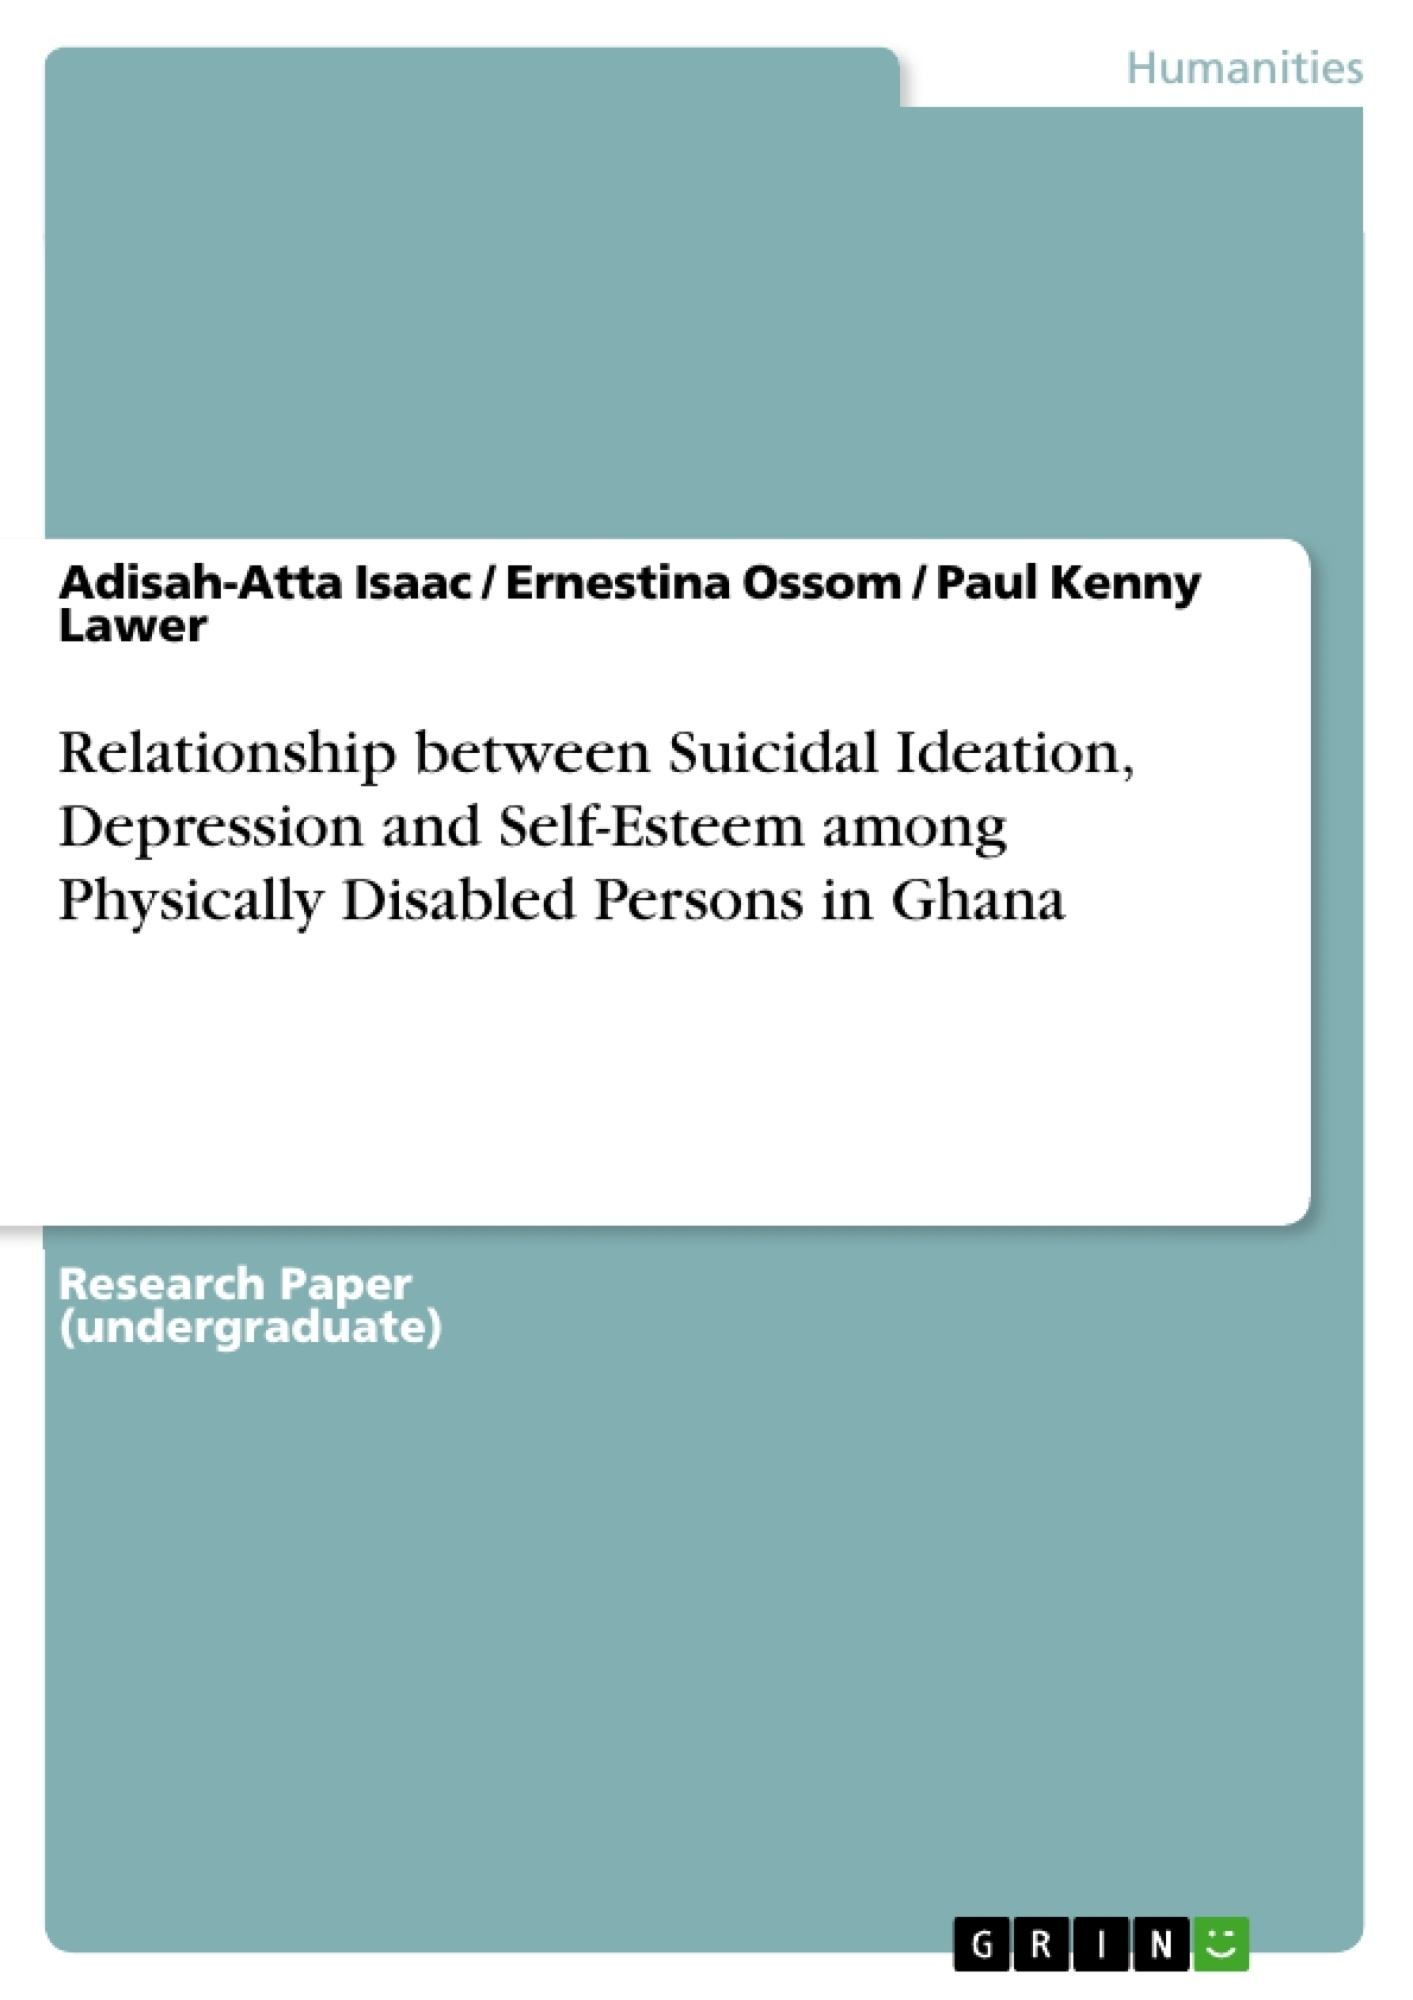 Title: Relationship between Suicidal Ideation, Depression and Self-Esteem among Physically Disabled Persons in Ghana